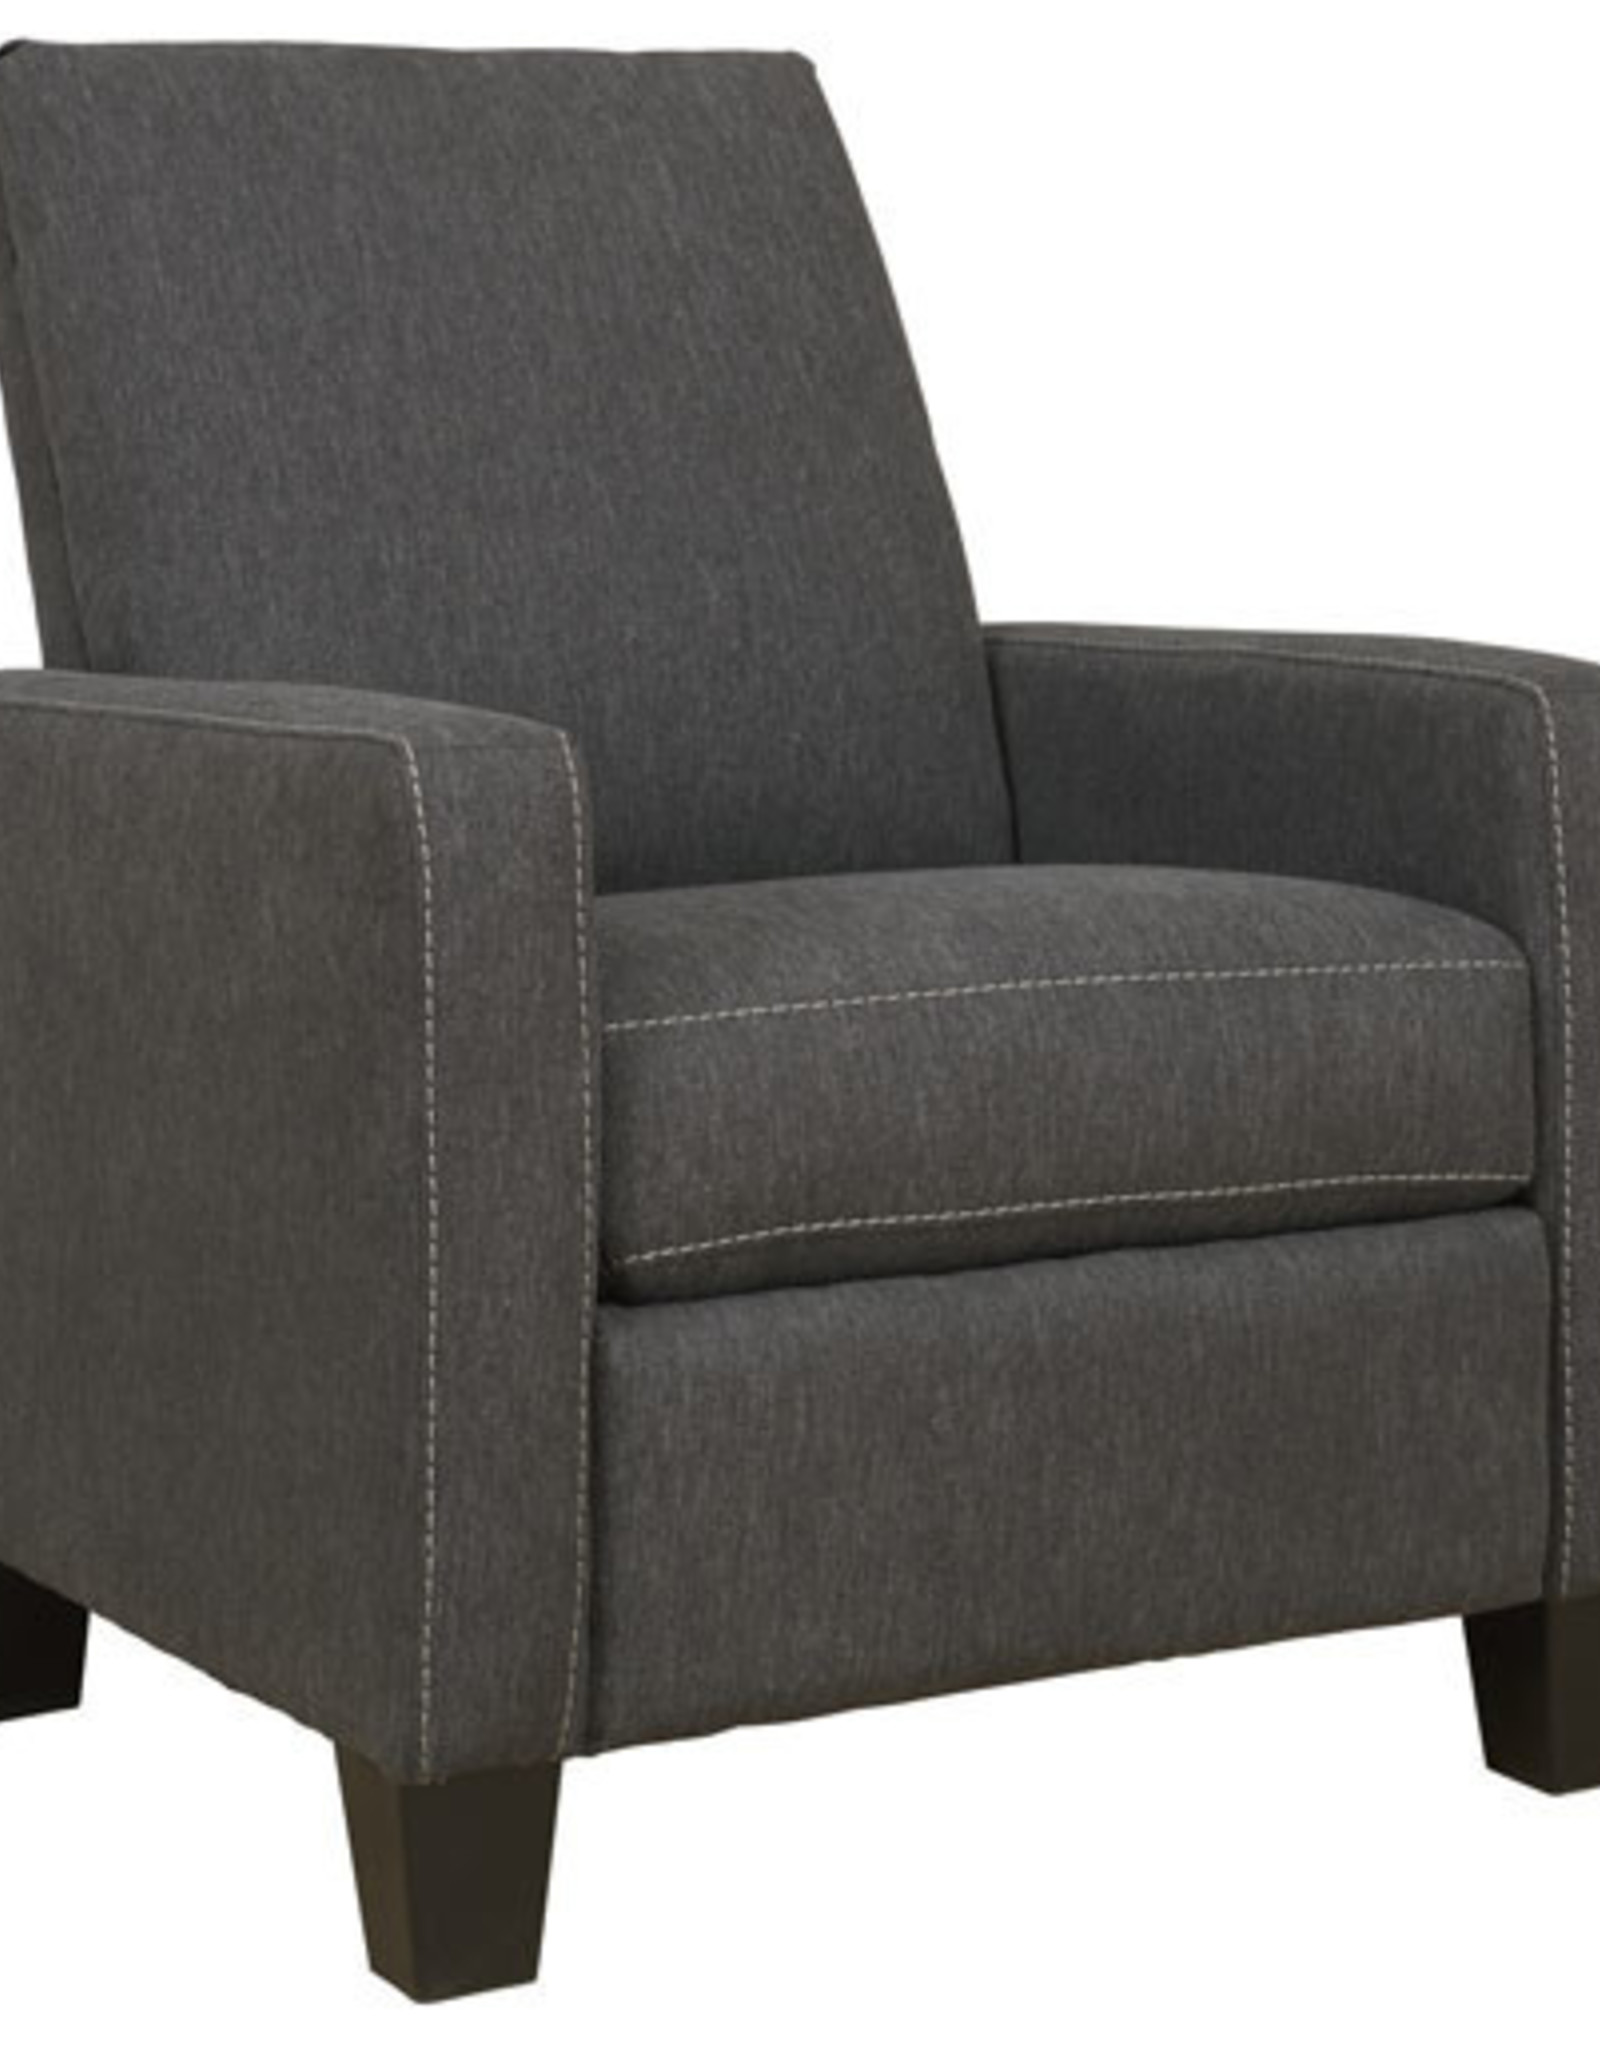 Dattner Low Leg Recliner (Charcoal) - Online Only